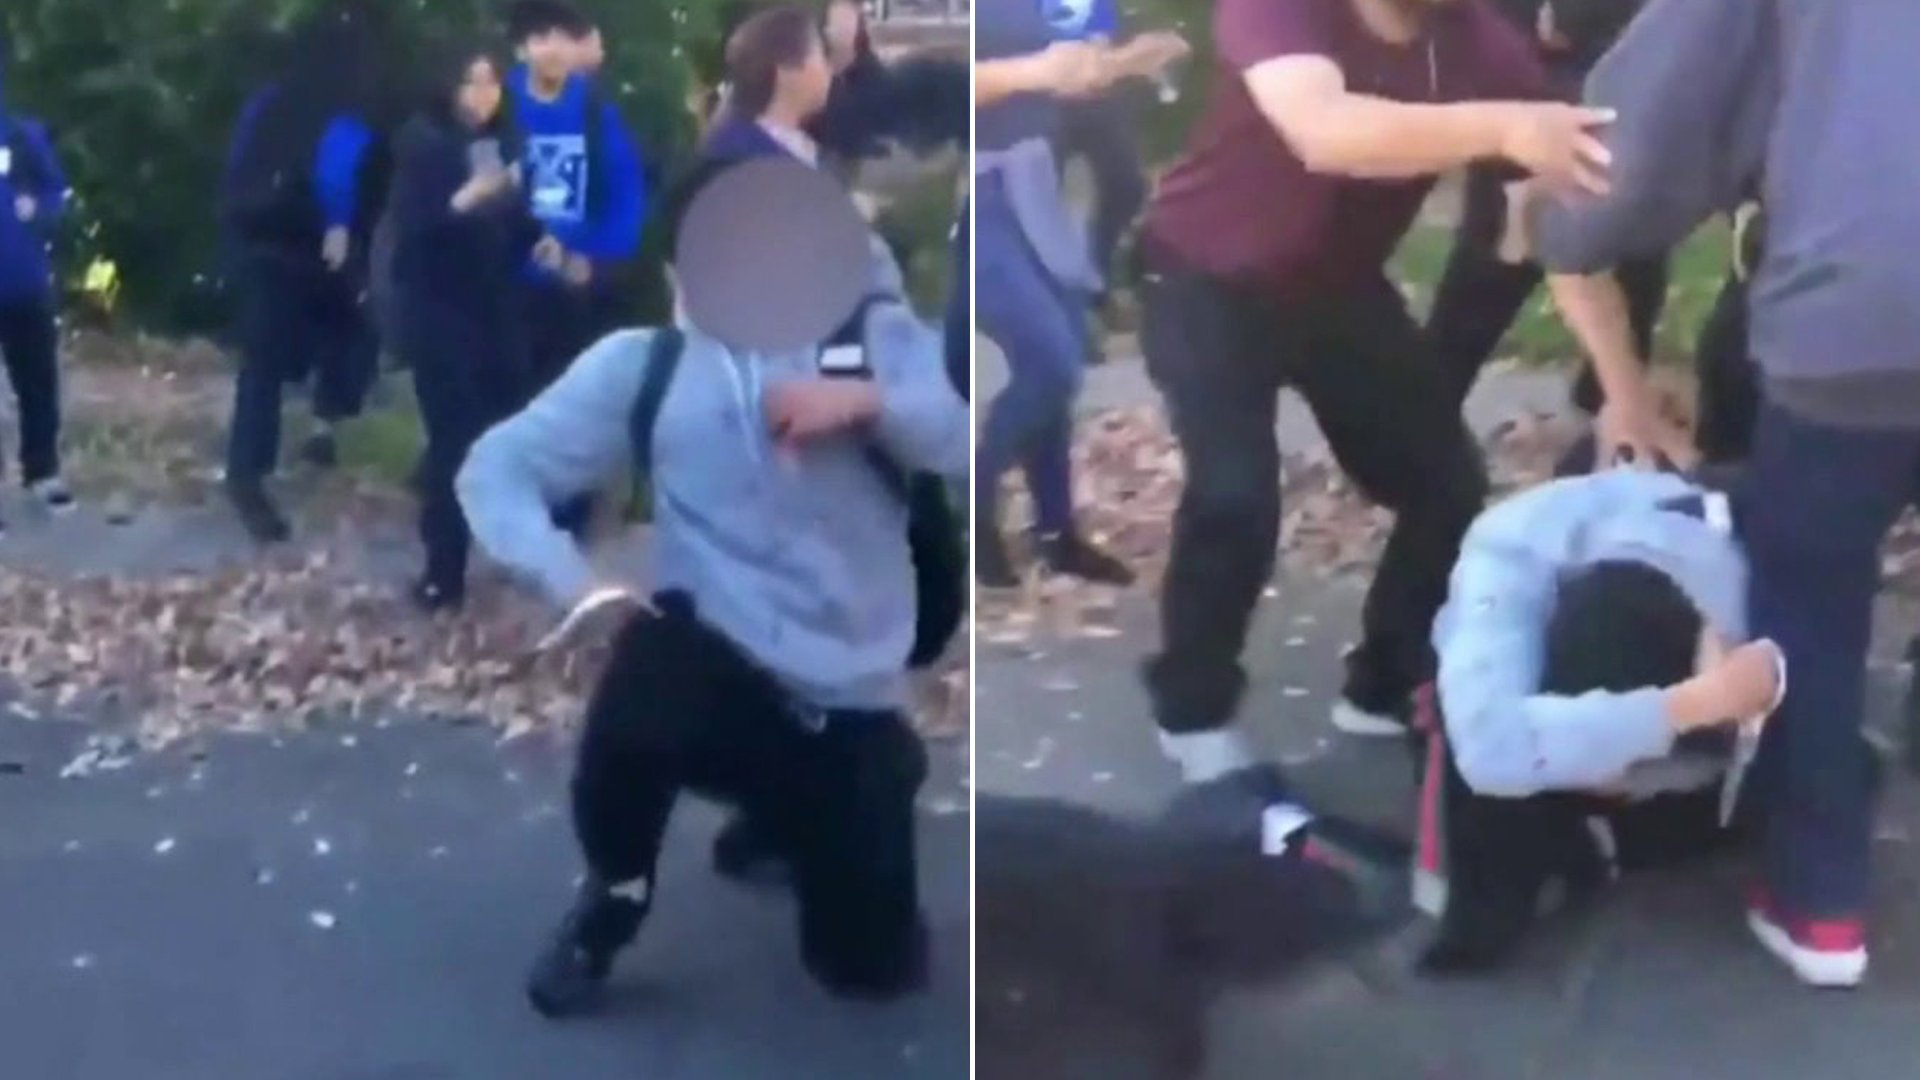 Cellphone video shows a person holding a sharp object during a brawl outside Mulholland Middle School in Lake Balboa on Jan. 24, 2020.